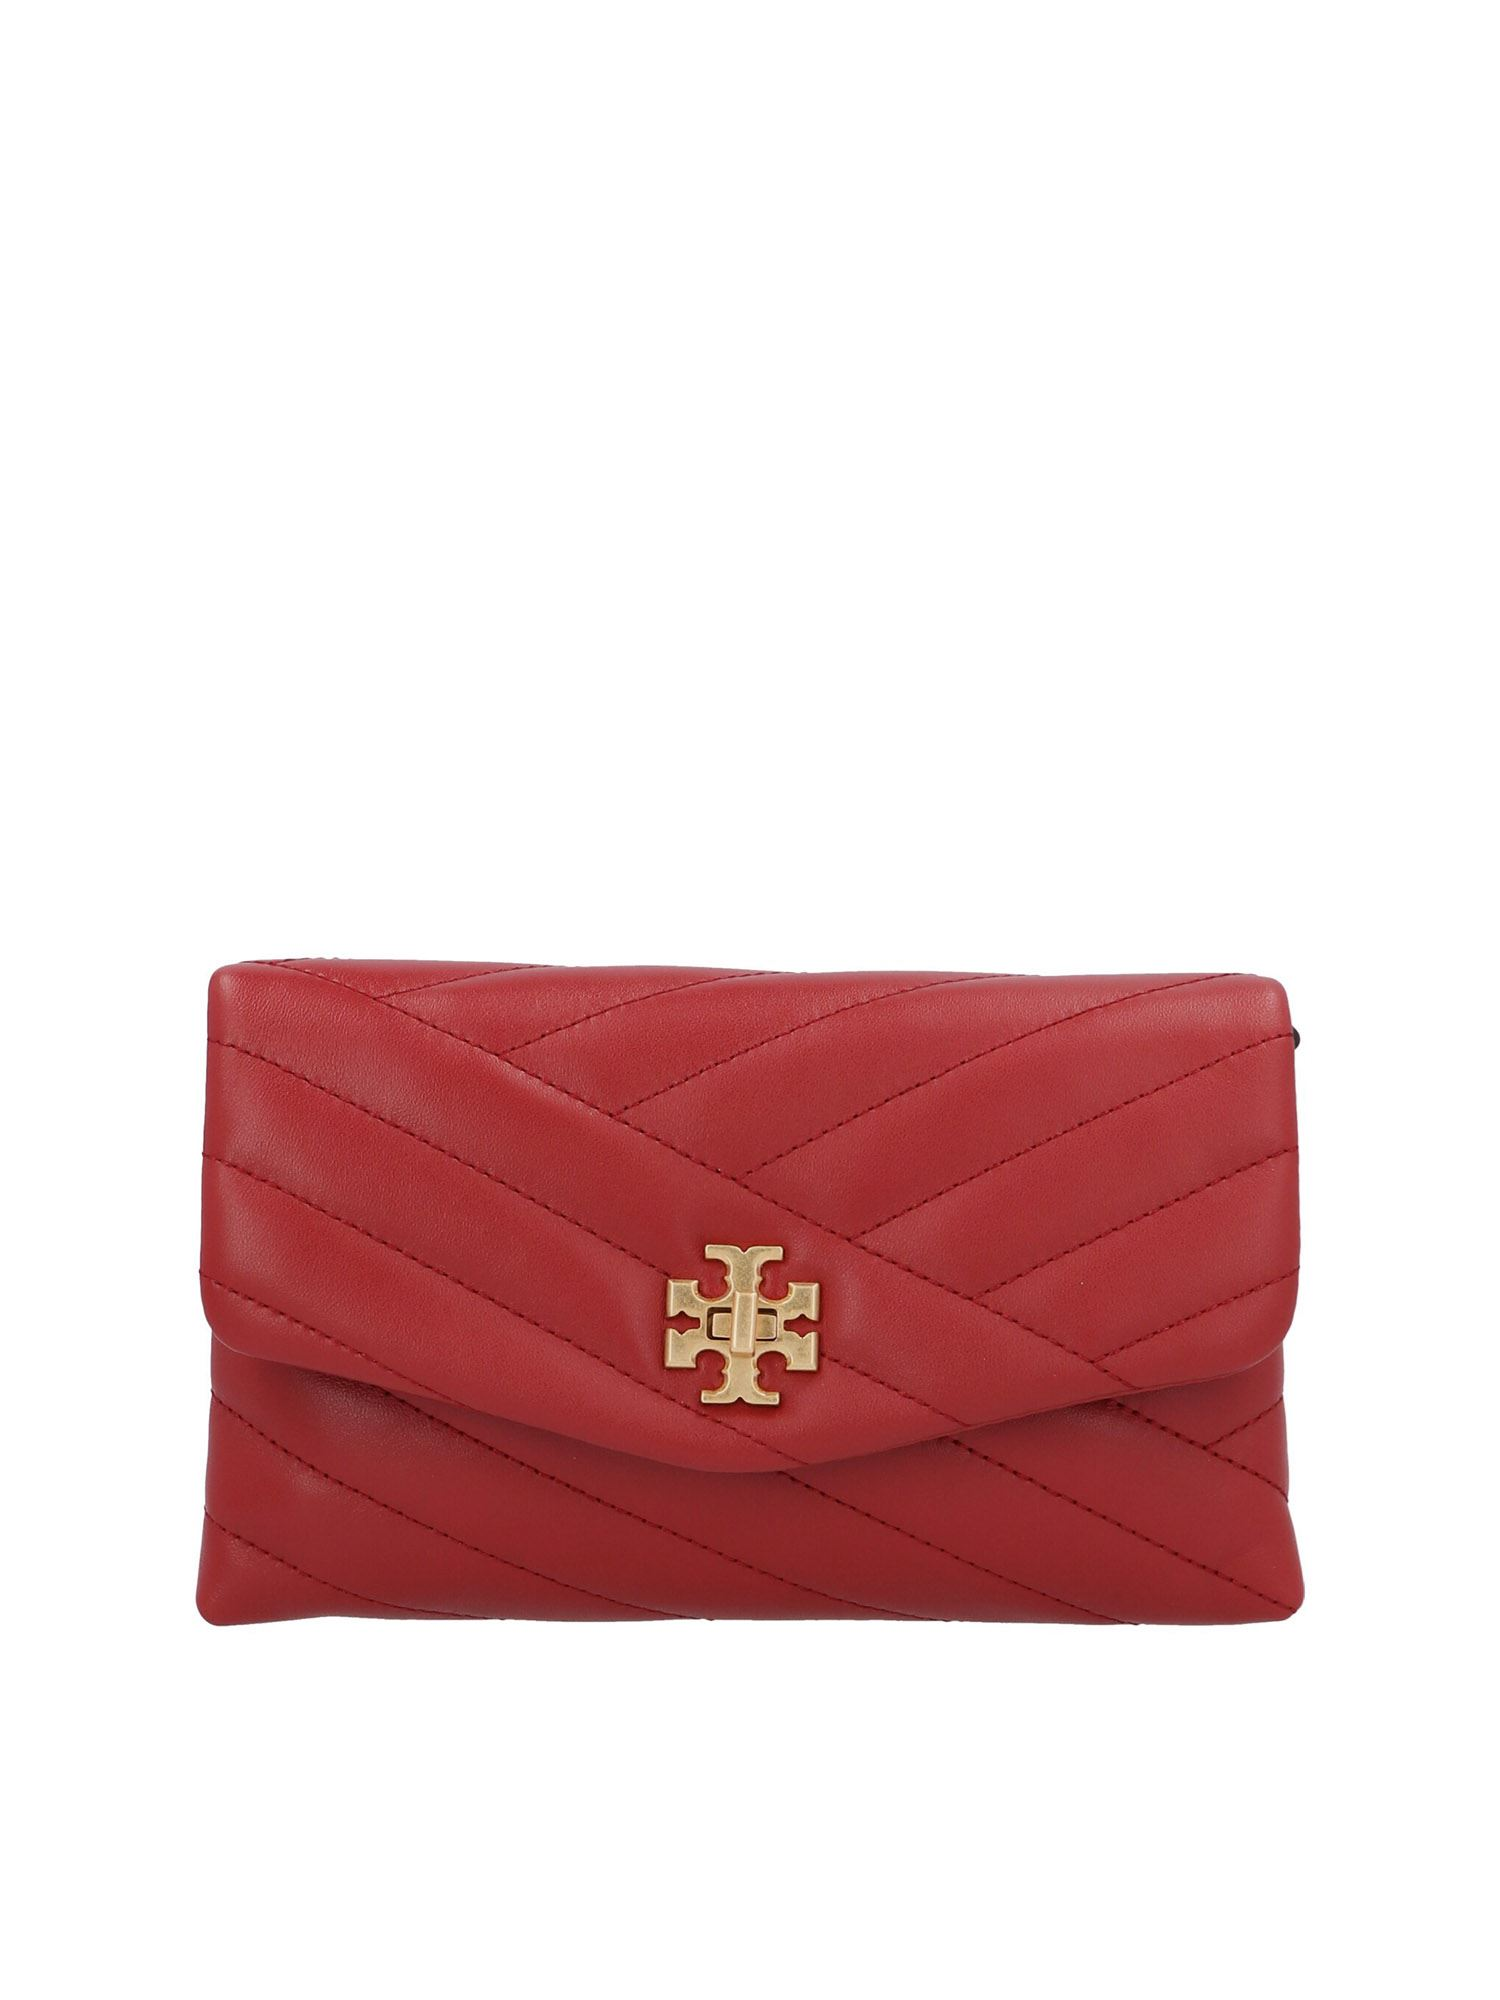 Tory Burch CHAIN KIRA WALLET IN RED